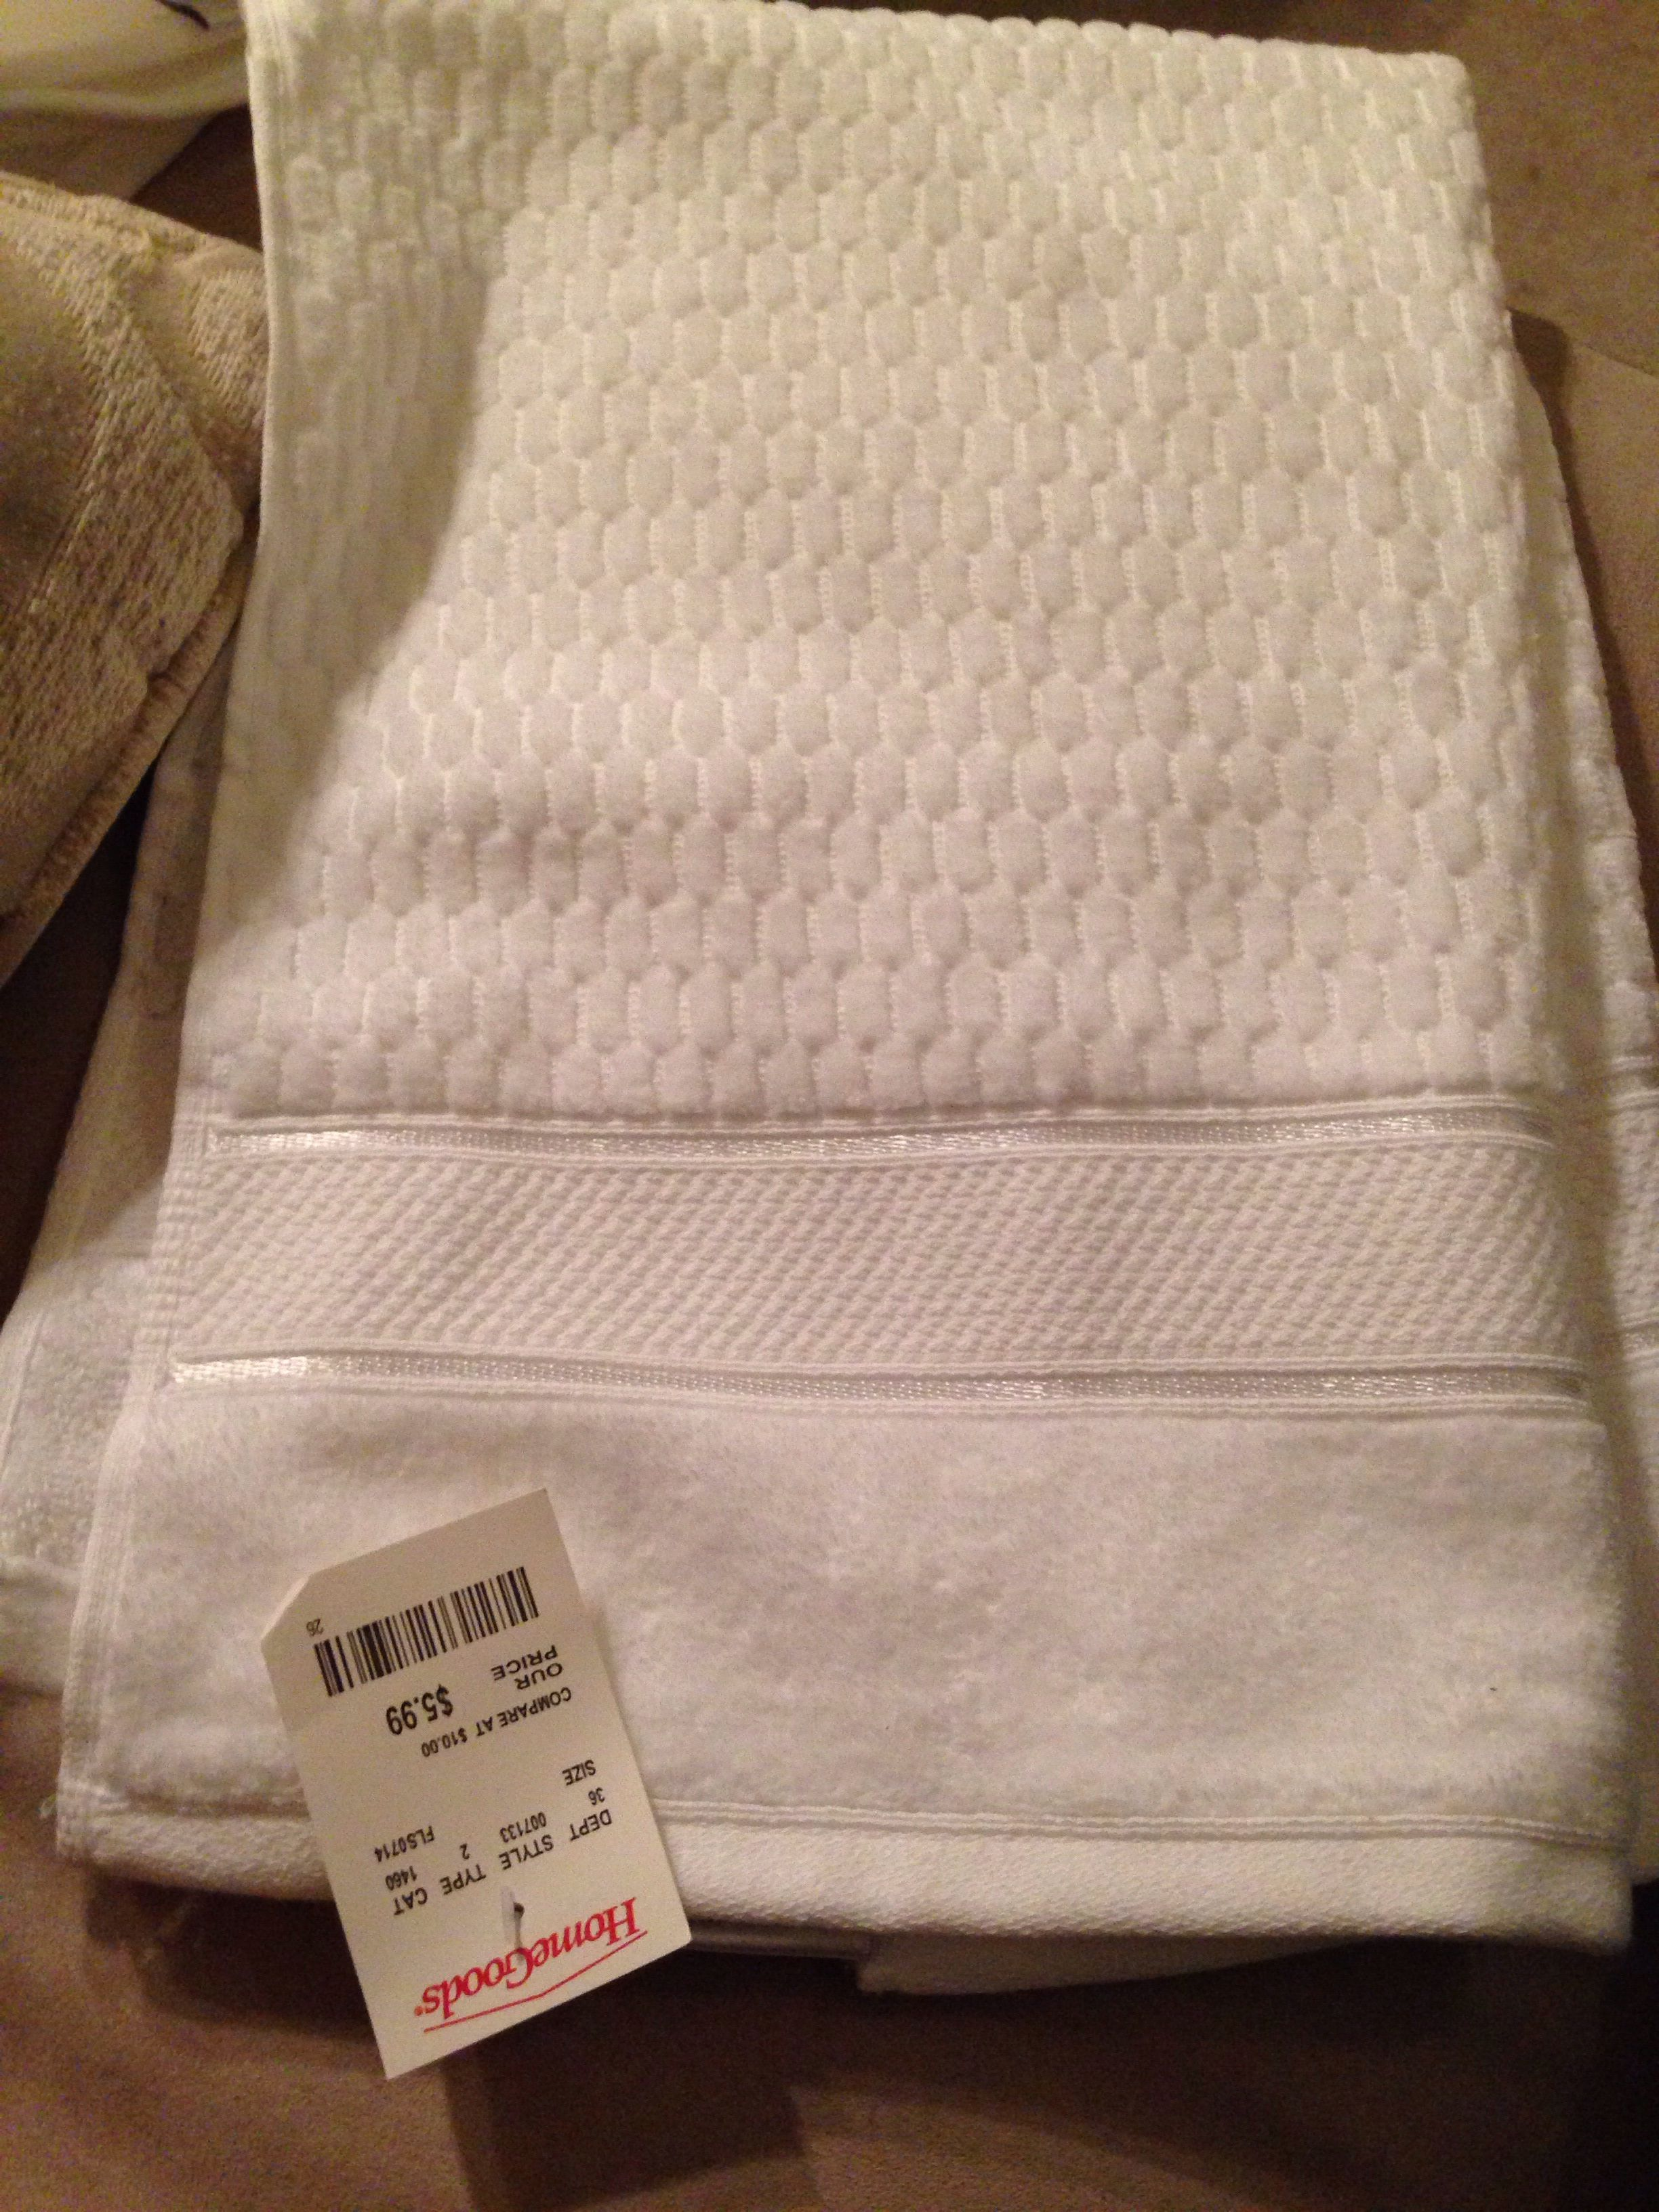 Hotel Balfour Hand Towel X2 With Images Towel Hand Towels